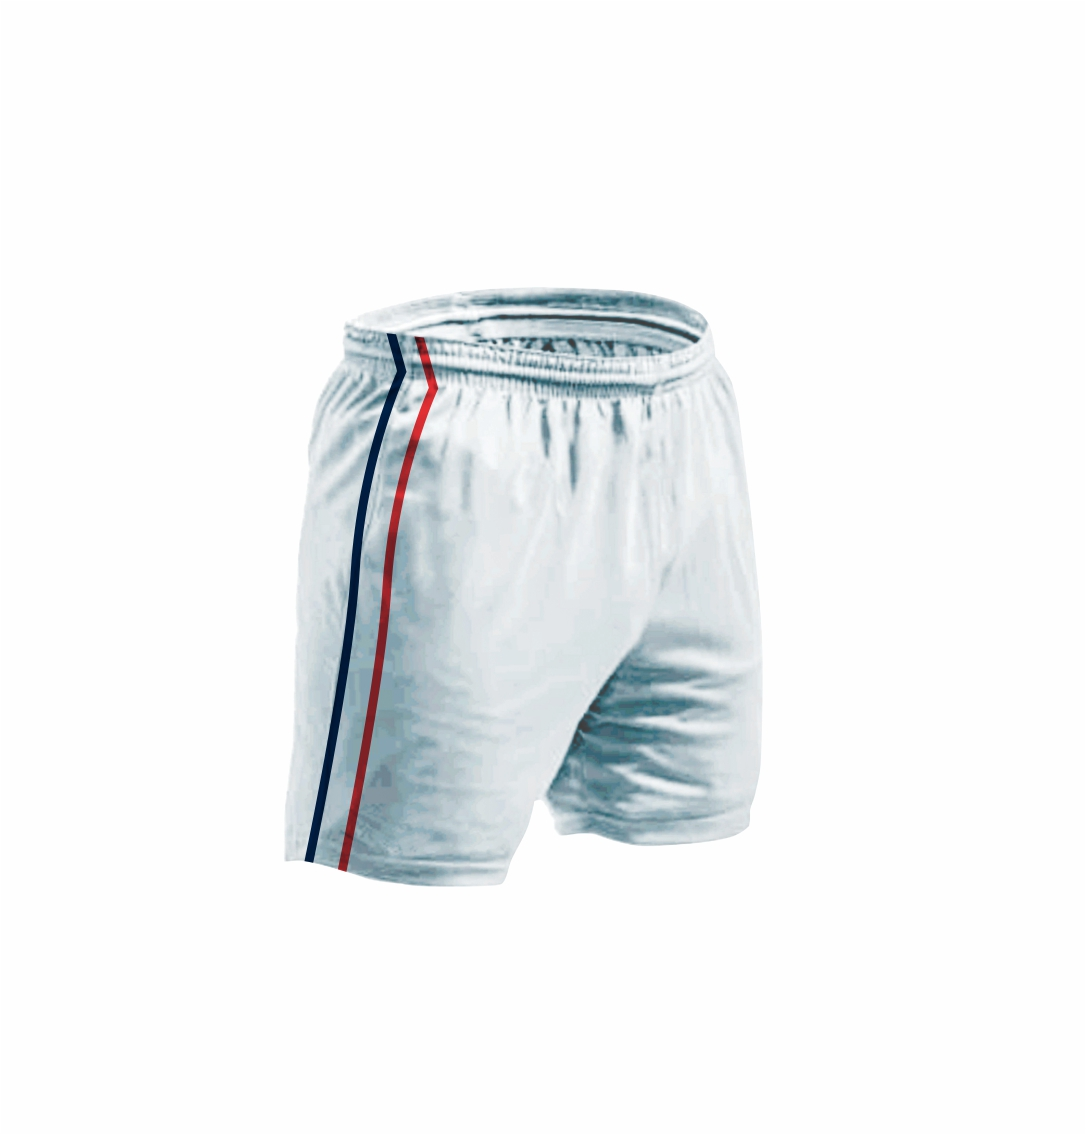 Panelled Zuco shorts - Morne